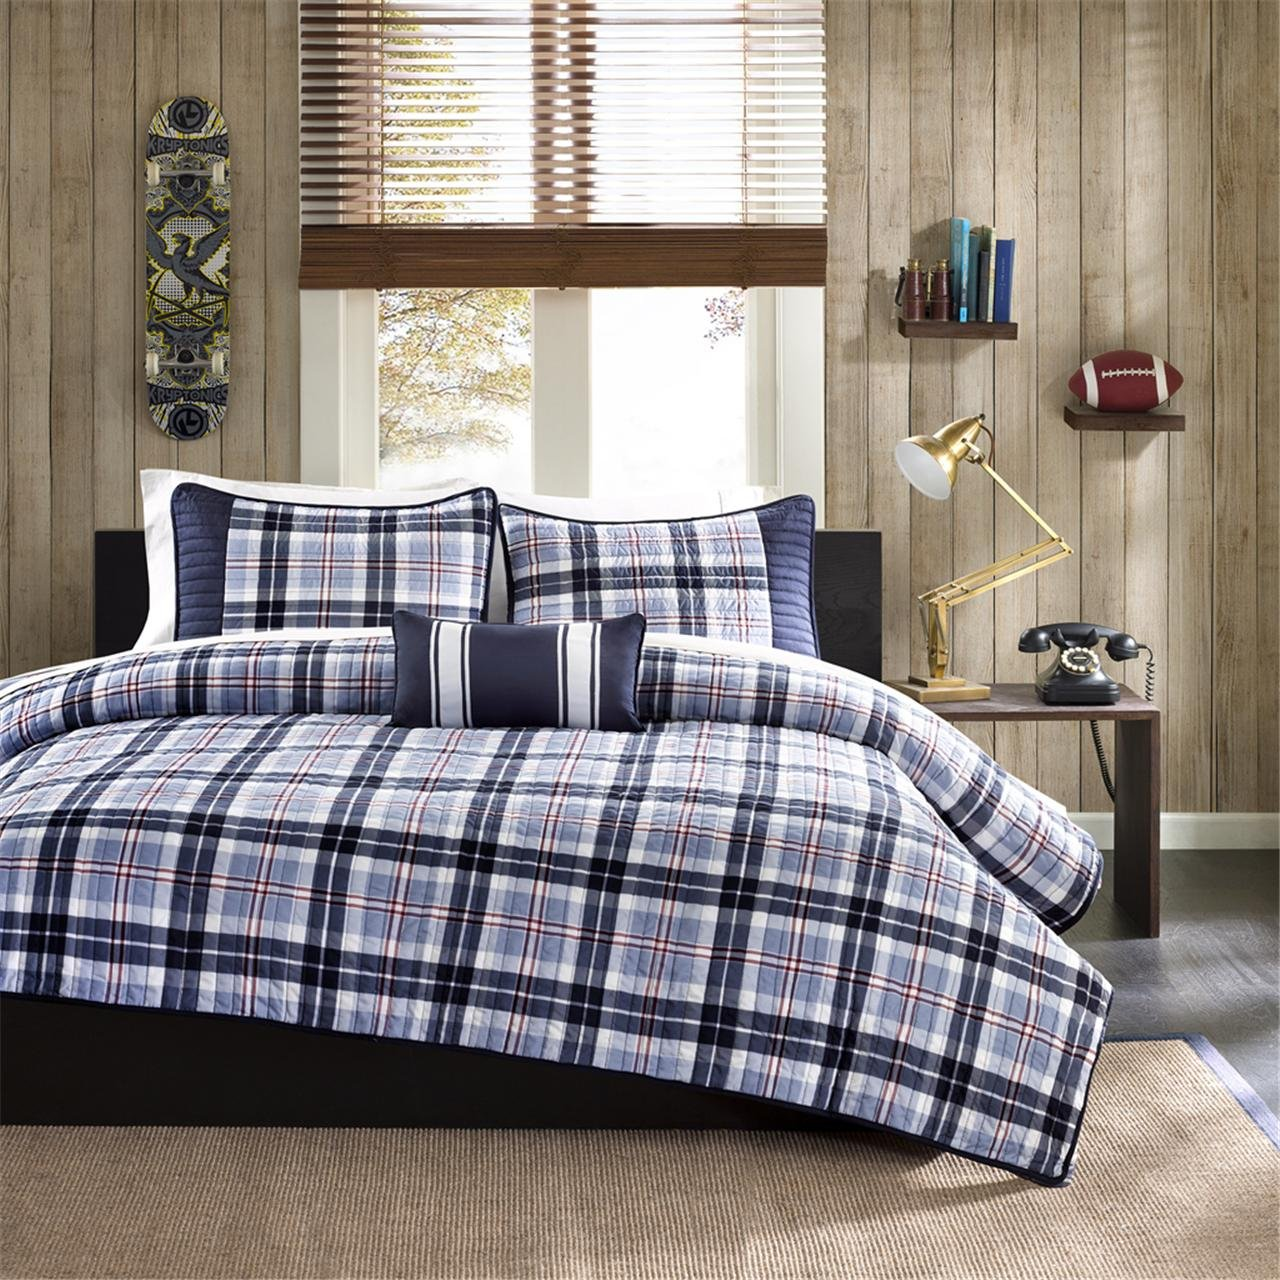 Mi-Zone Elliot Twin/Twin XL Size Teen Boys Quilt Bedding Set - Navy, Plaid – 3 Piece Boys Bedding Quilt Coverlets – Peach Skin Fabric Bed Quilts Quilted Coverlet